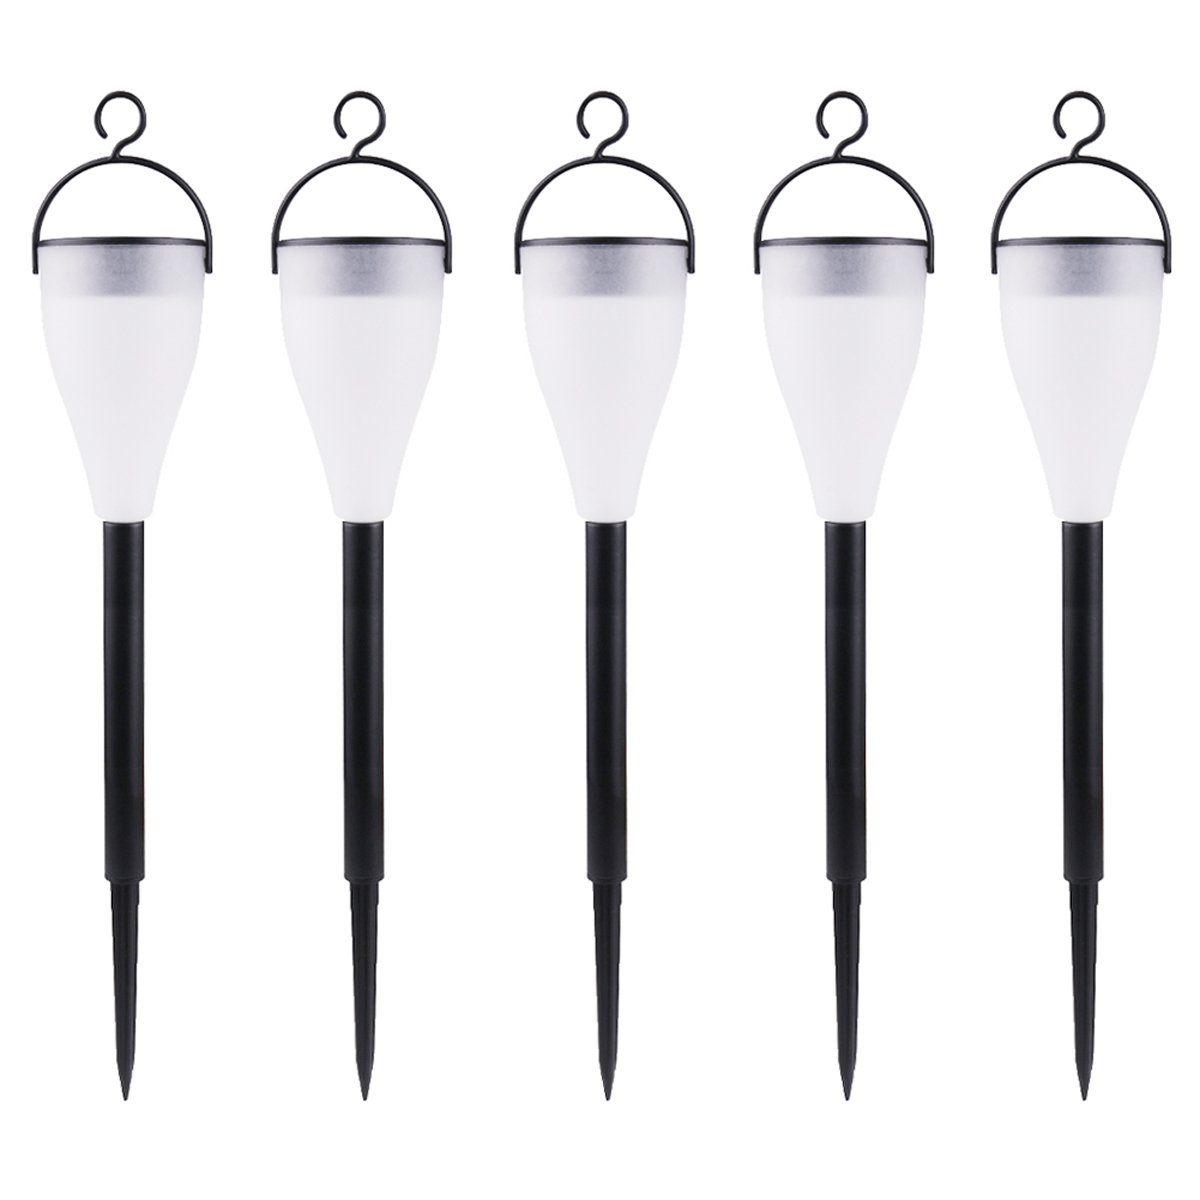 Pack of 5 Lawn with 7 Colors and 3 Lighting Modes for Yard Path and Landscape NALEDI Color Changing Solar Lights Outdoor